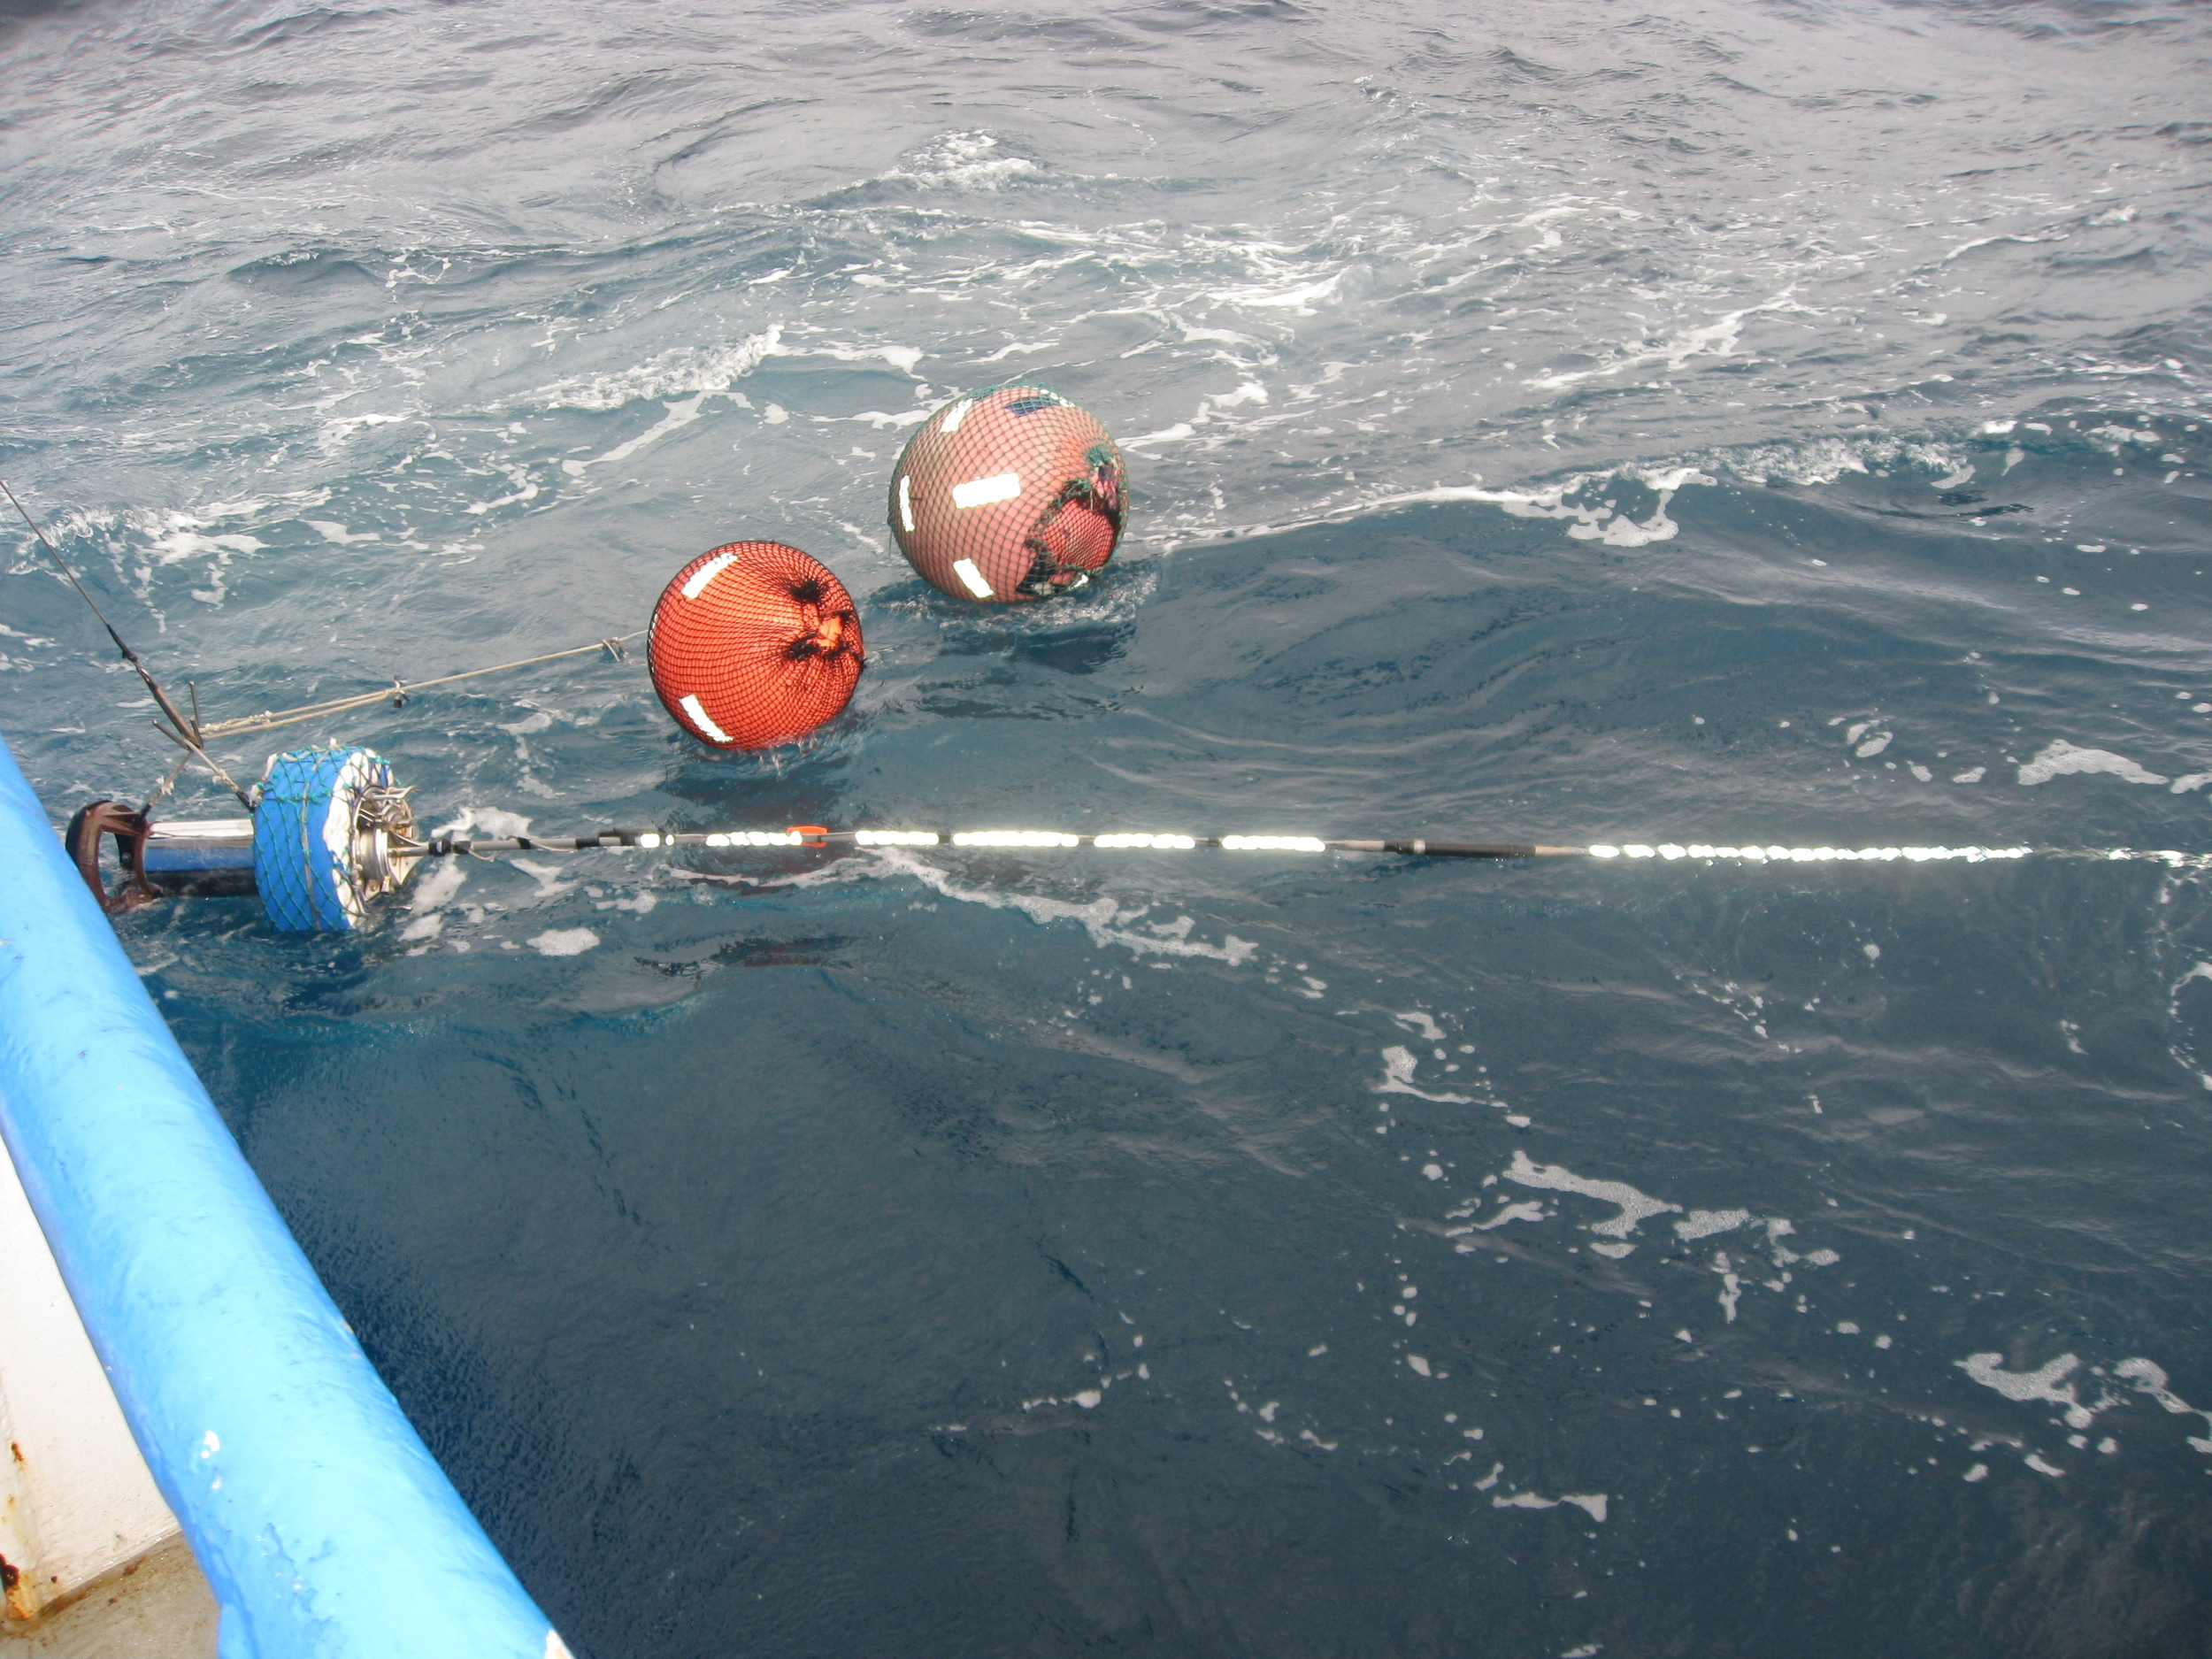 Buoys and radio beepers (used to find the longline gear for haulback)